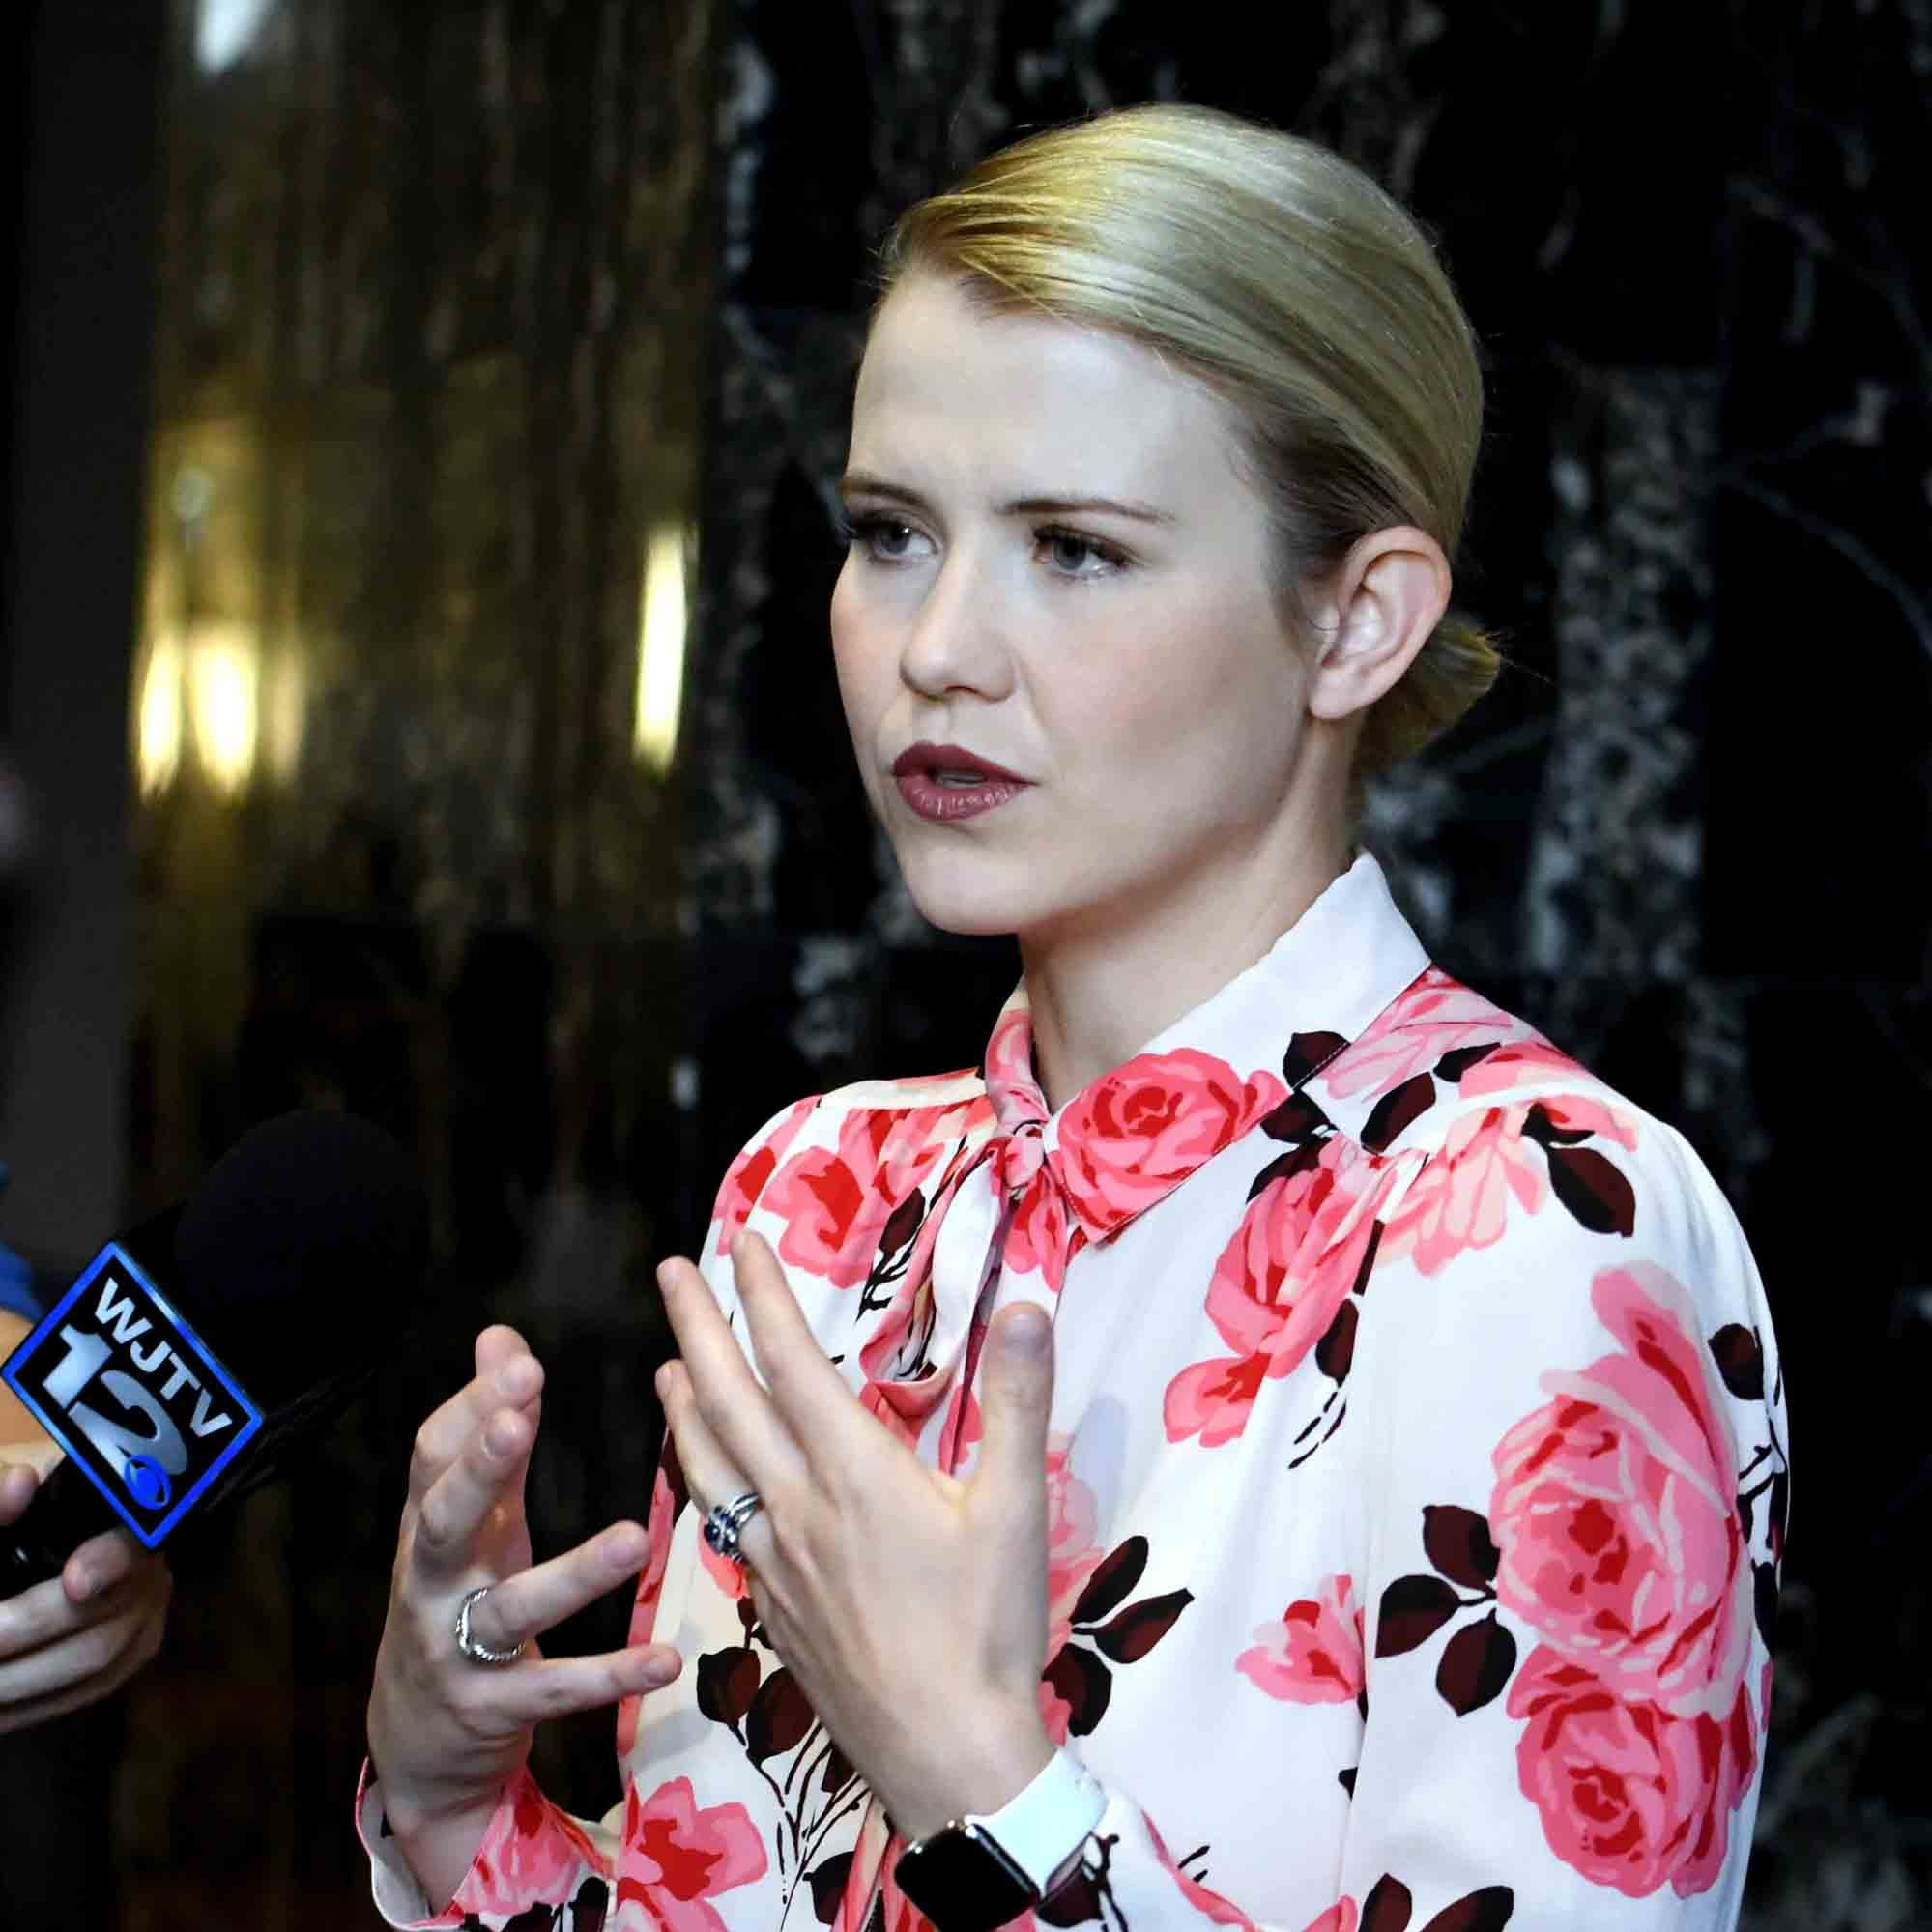 Elizabeth Smart details kidnapping, rape to packed room at Franklin fundraiser